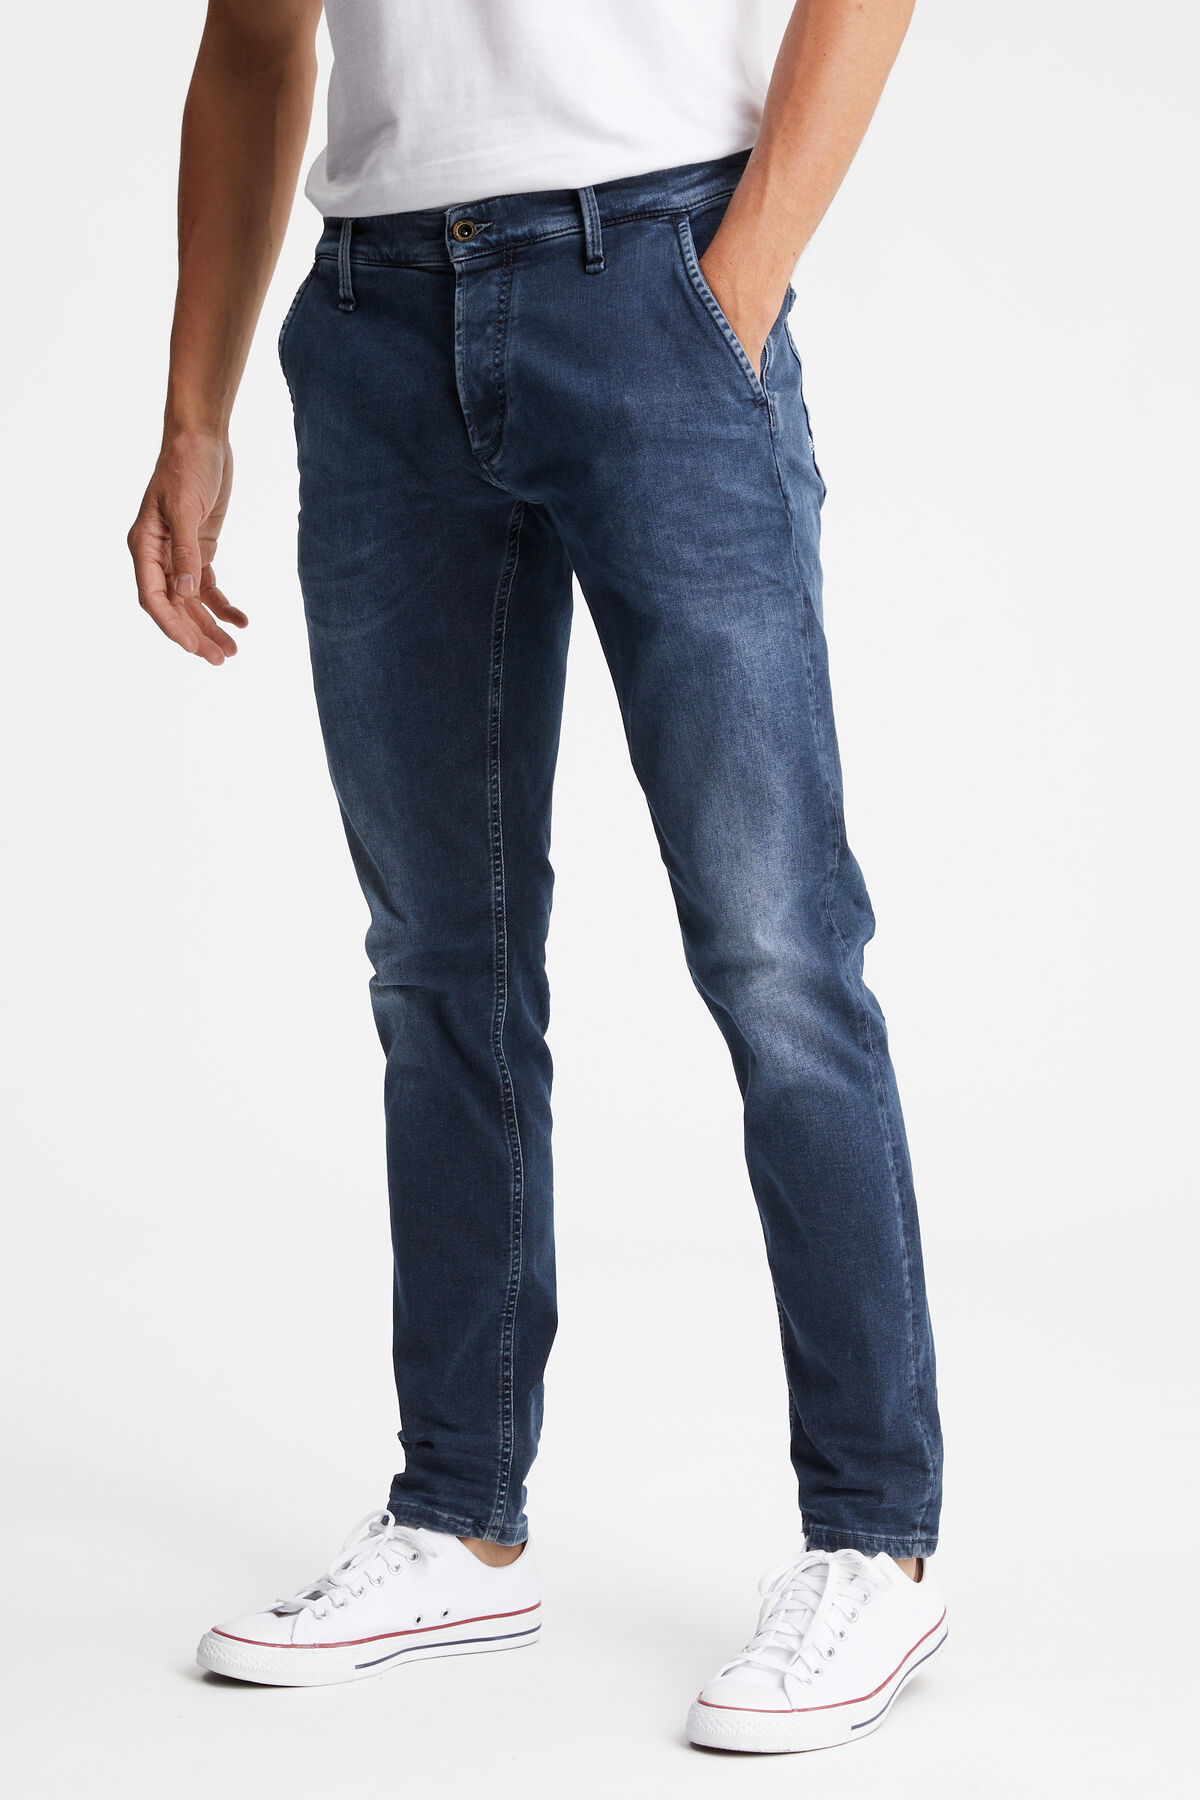 YORK Dark Washed Indigo Denim - Slim, Tapered Fit